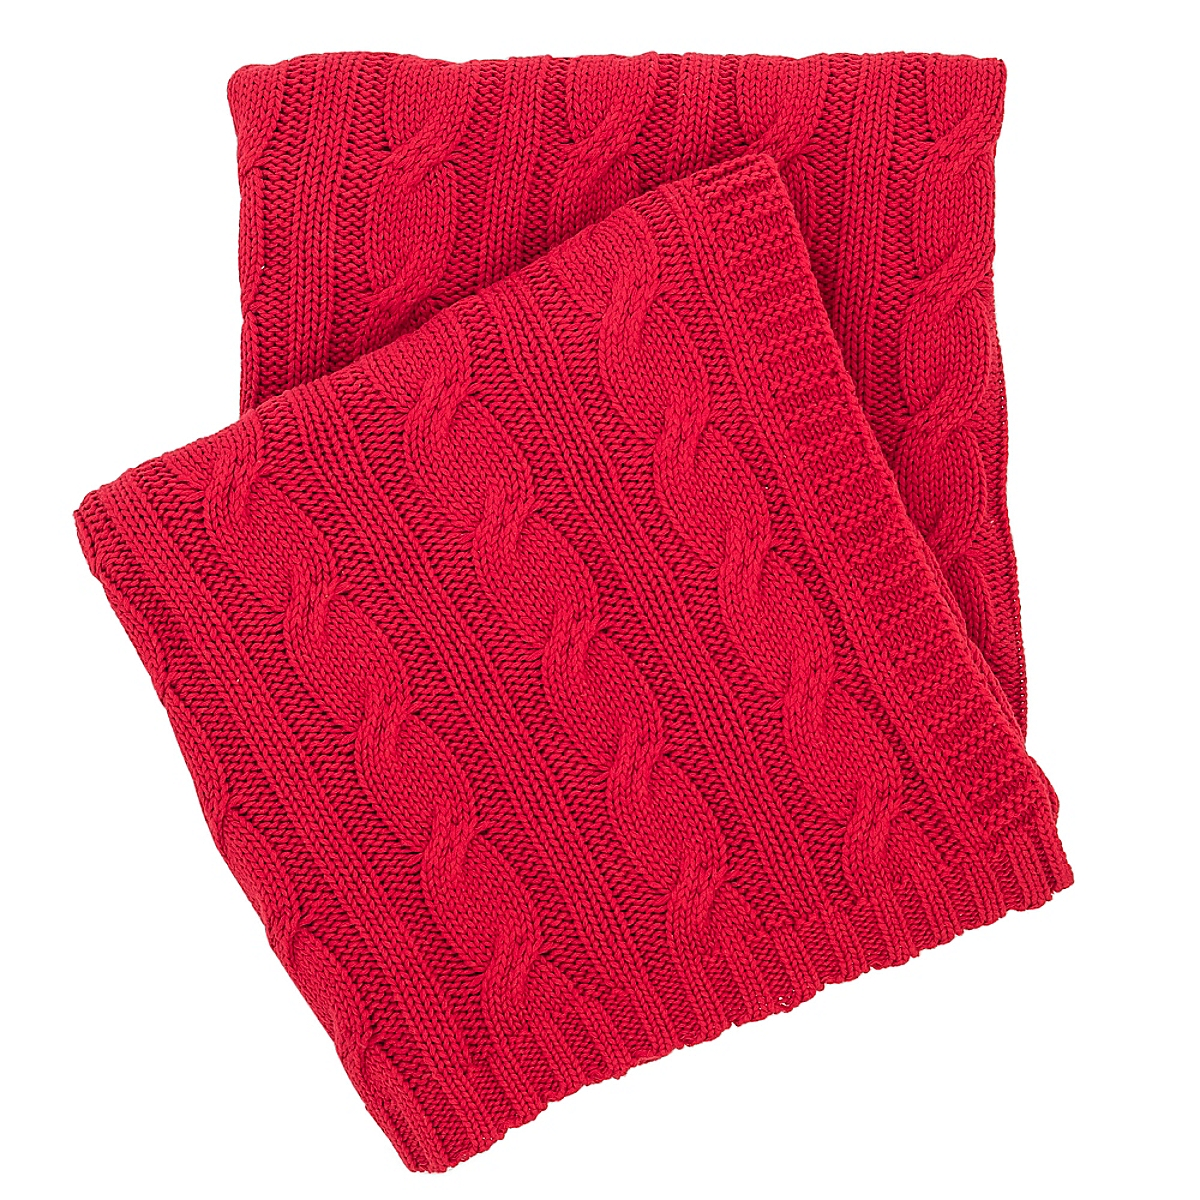 Cozy Cable Knit Blanket Tomato